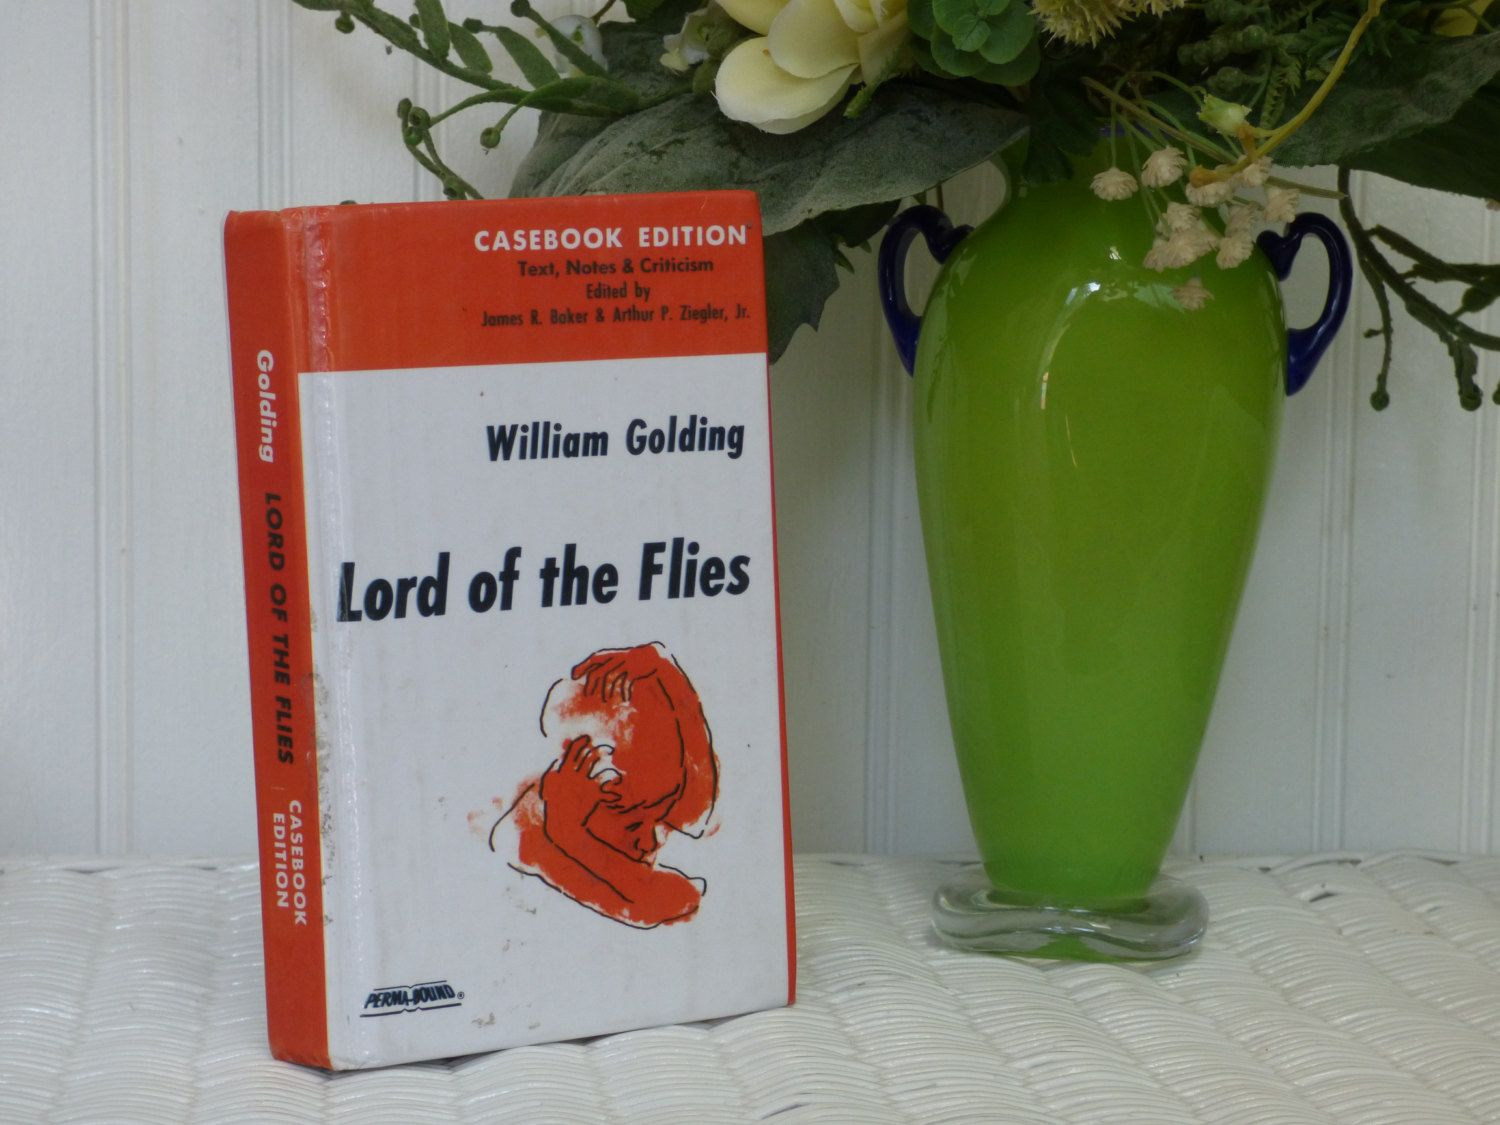 lord of the flies william golding casebook edition text  lord of the flies william golding casebook edition text notes and criticism